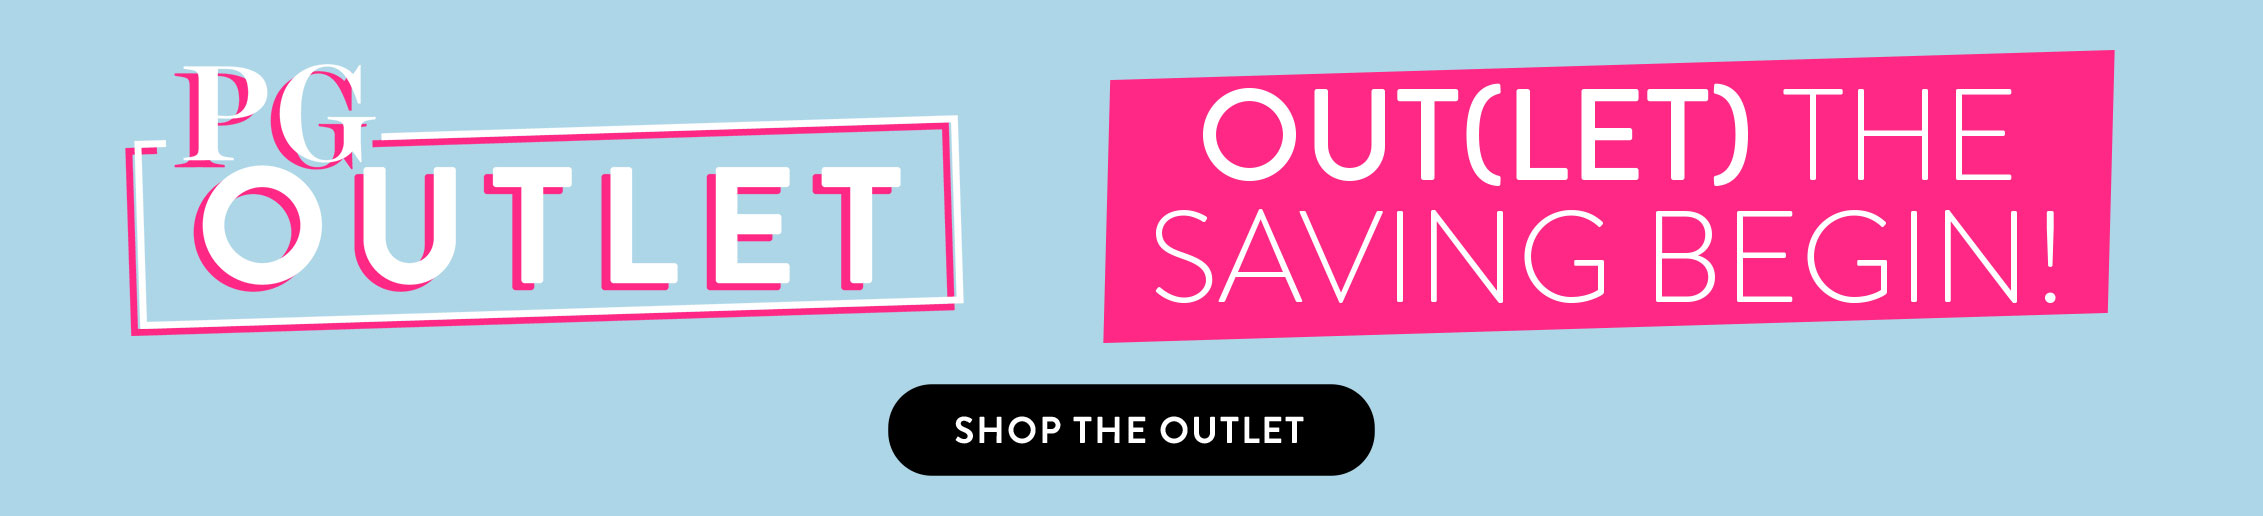 SHOP THE OUTLET